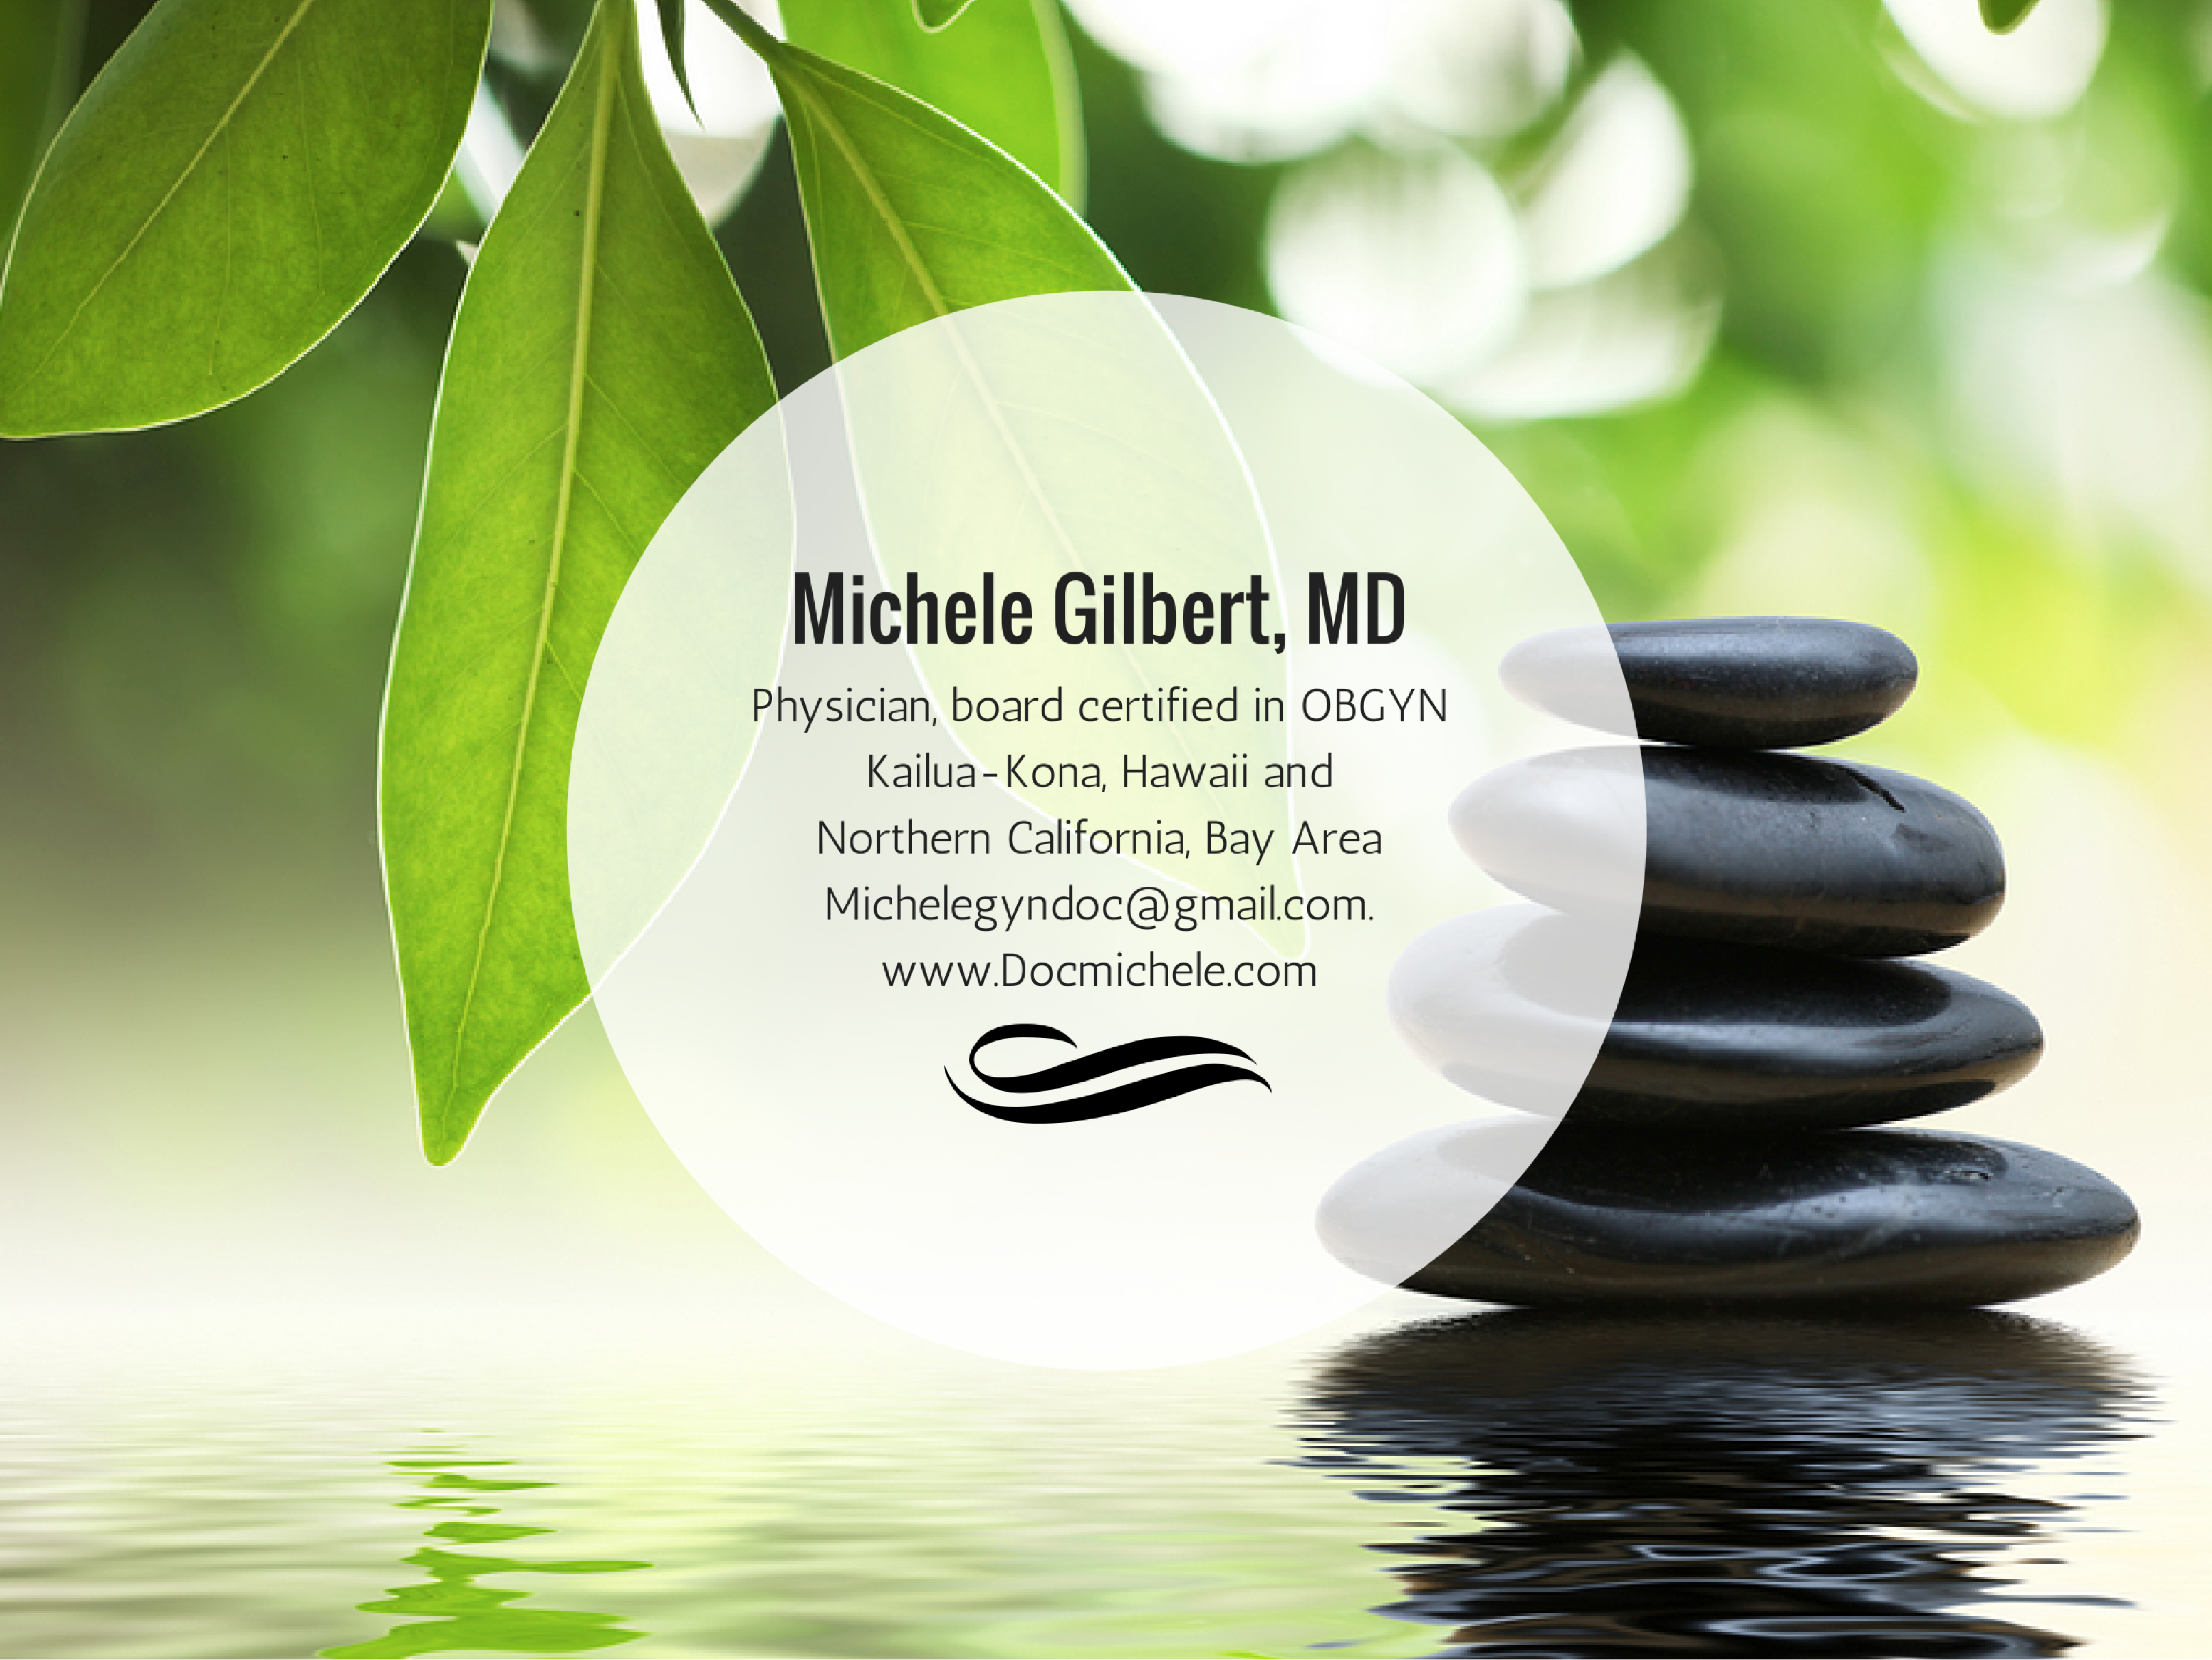 Michele Gilbert, MD